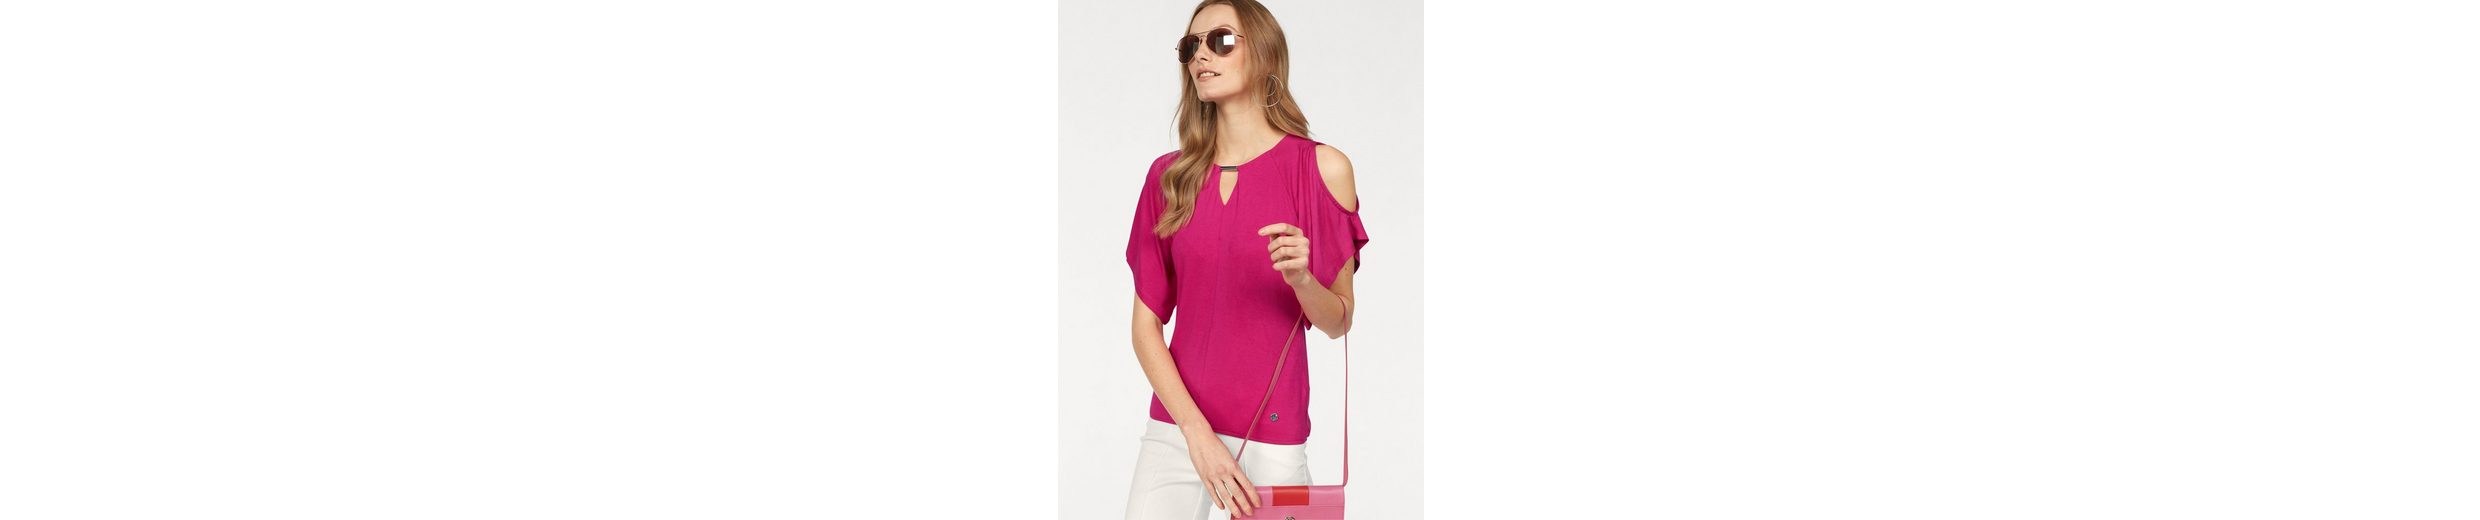 Bruno Banani Wickelshirt, mit Schulter Cut Outs